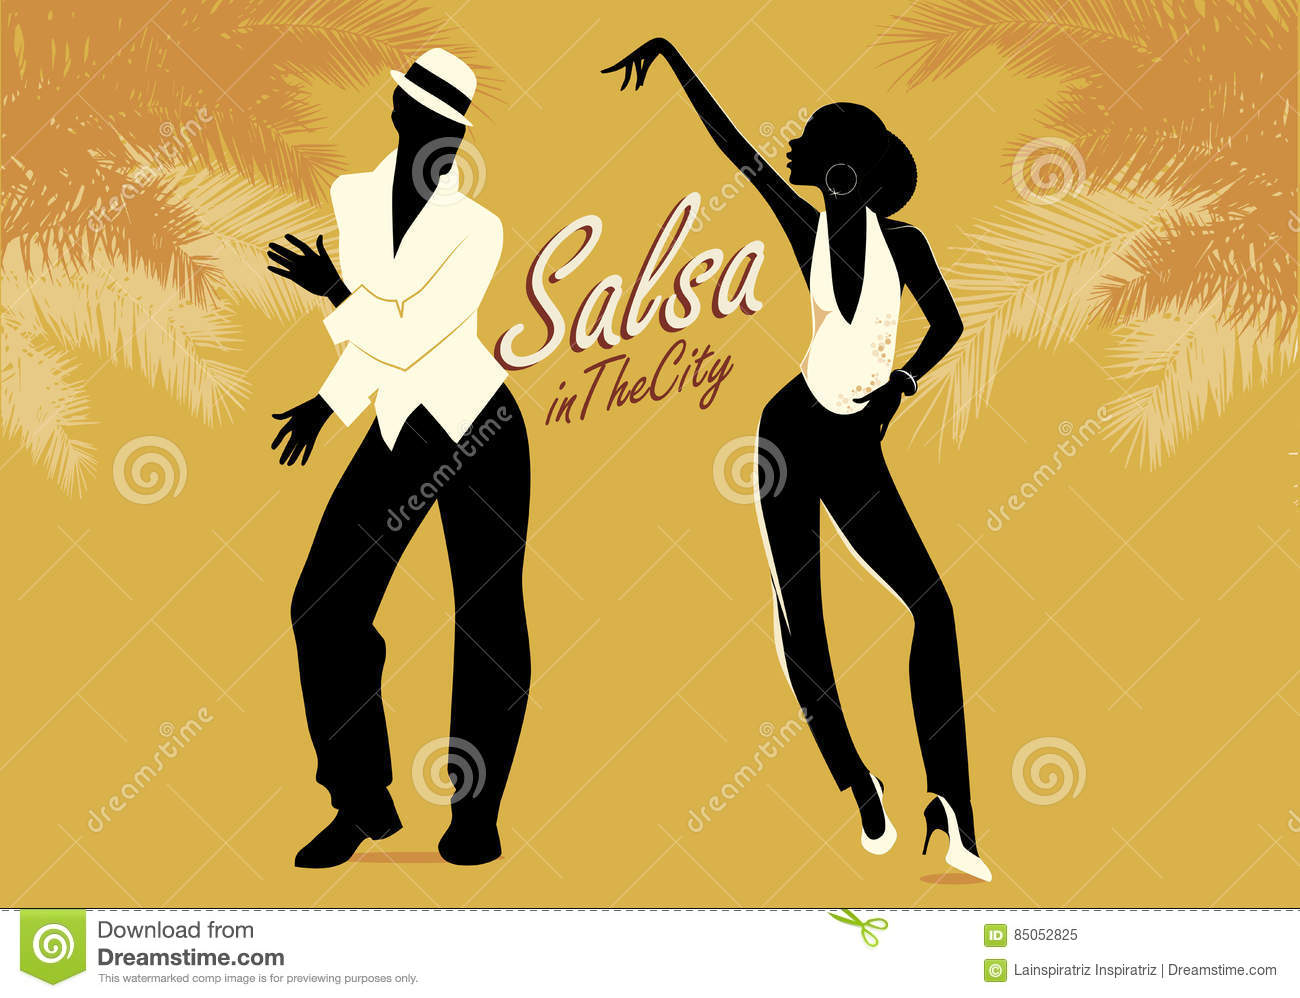 Salsa Cuban Music And Dance Illustration With Cartoon